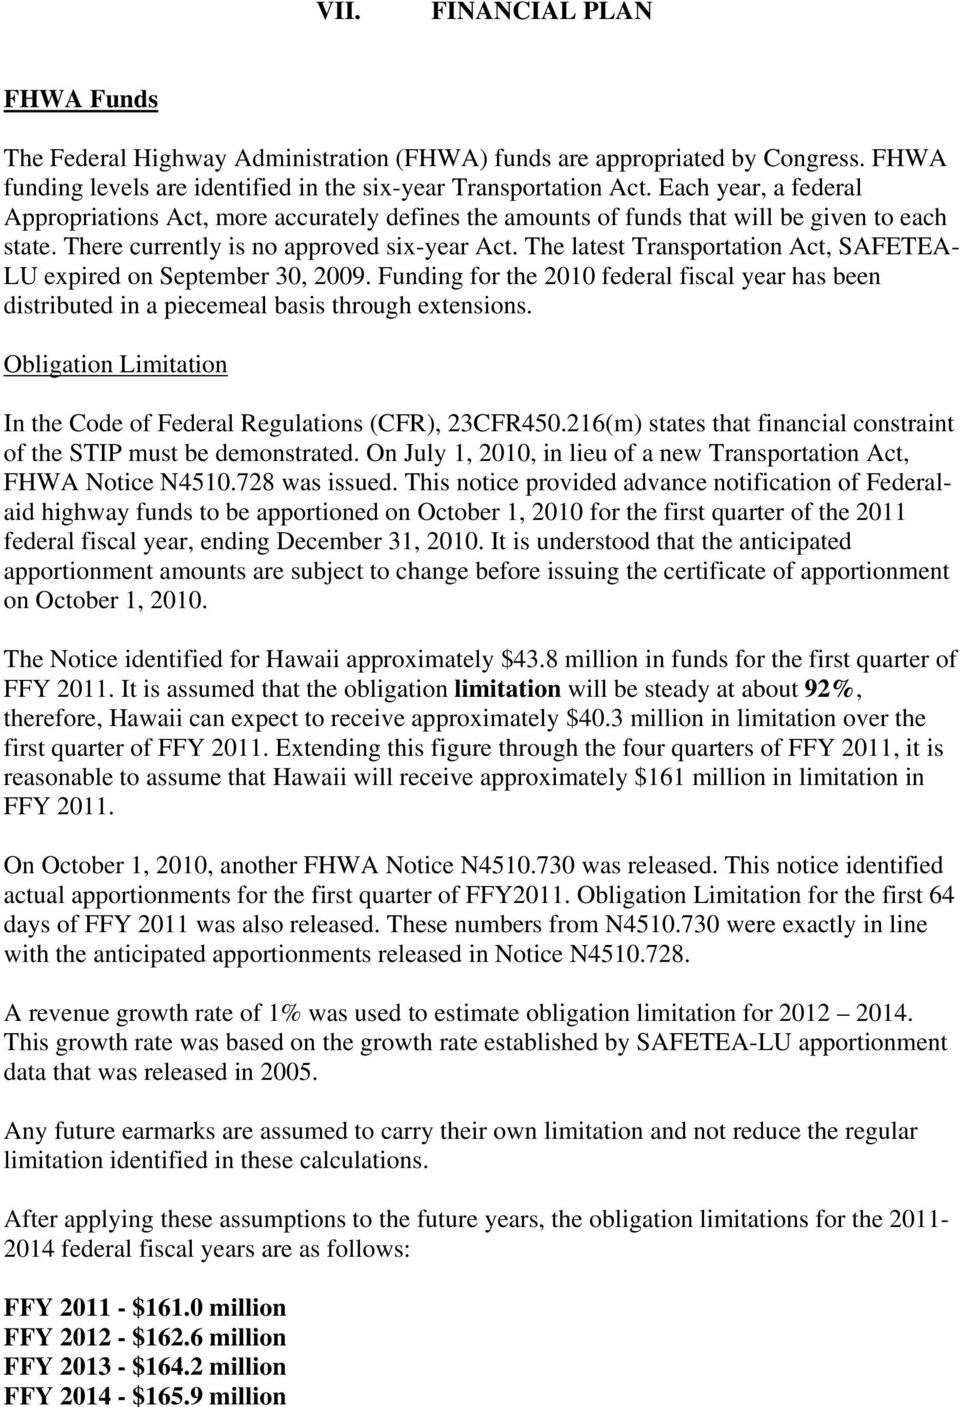 The latest Transportation Act, SAFETEA- LU expired on September 30, 2009. Funding for the 2010 federal fiscal year has been distributed in a piecemeal basis through extensions.